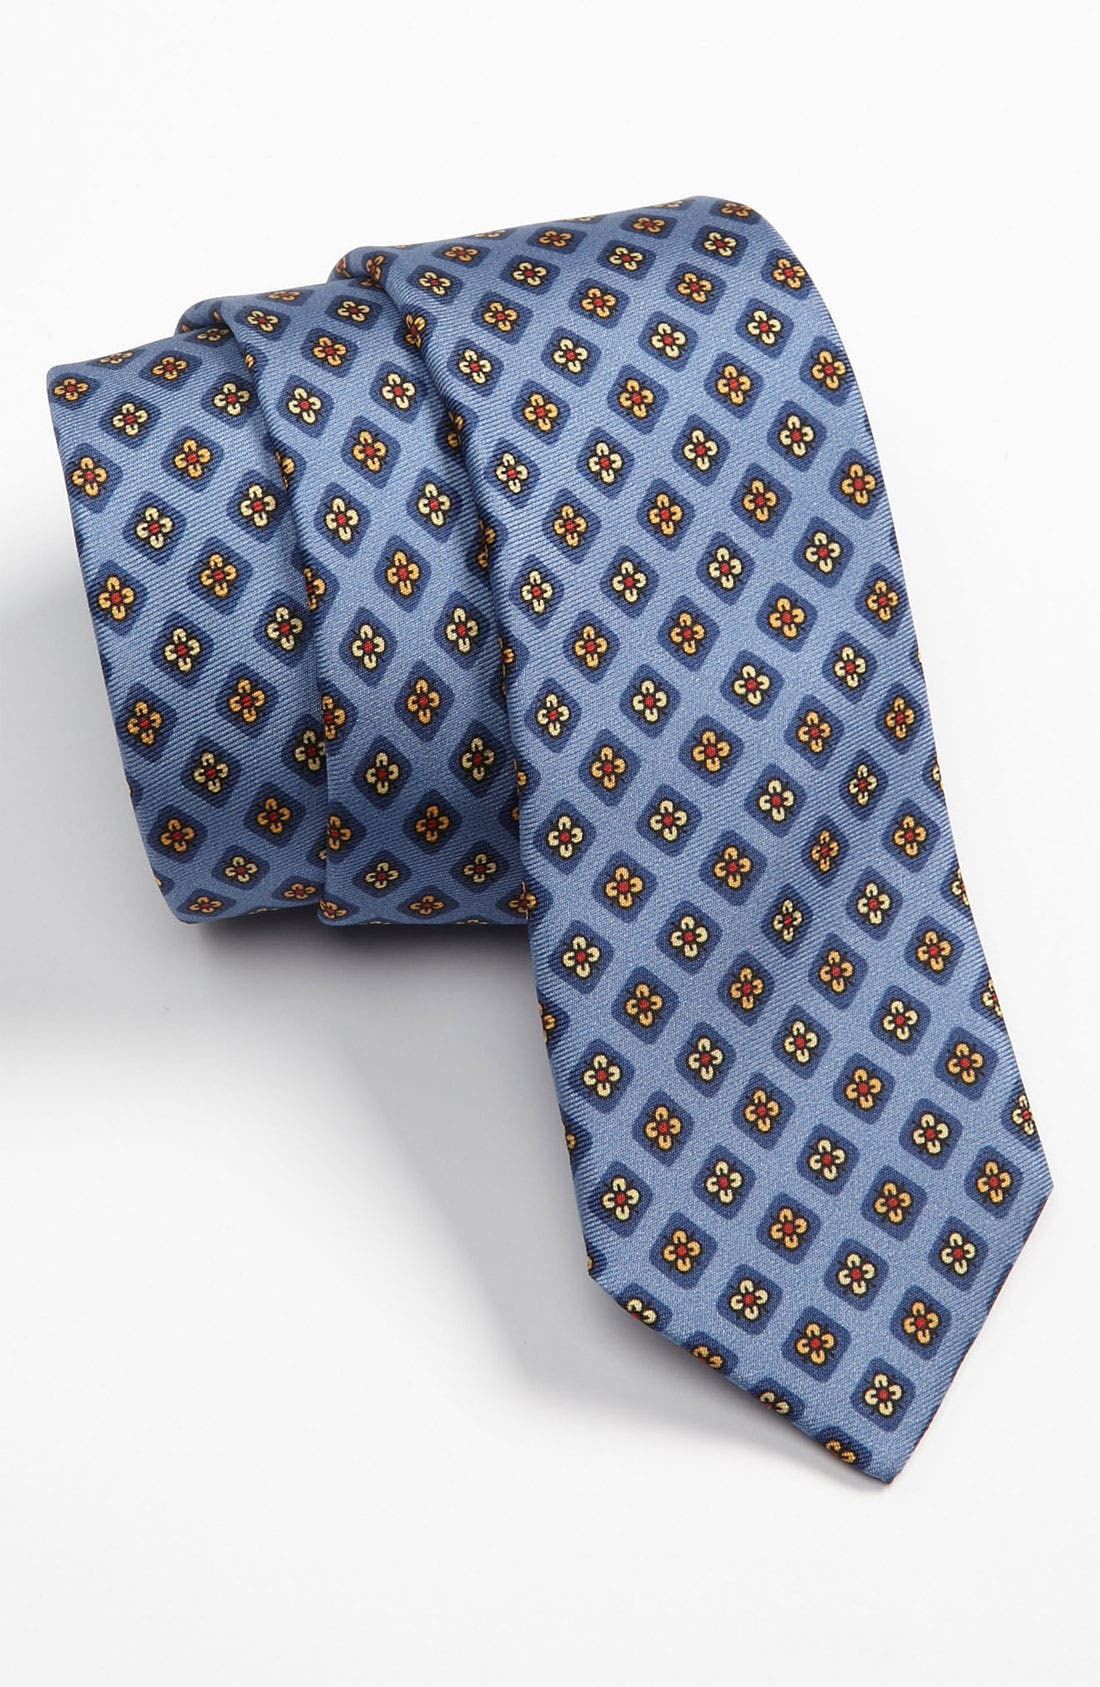 Main Image - David Hart Woven Silk Tie